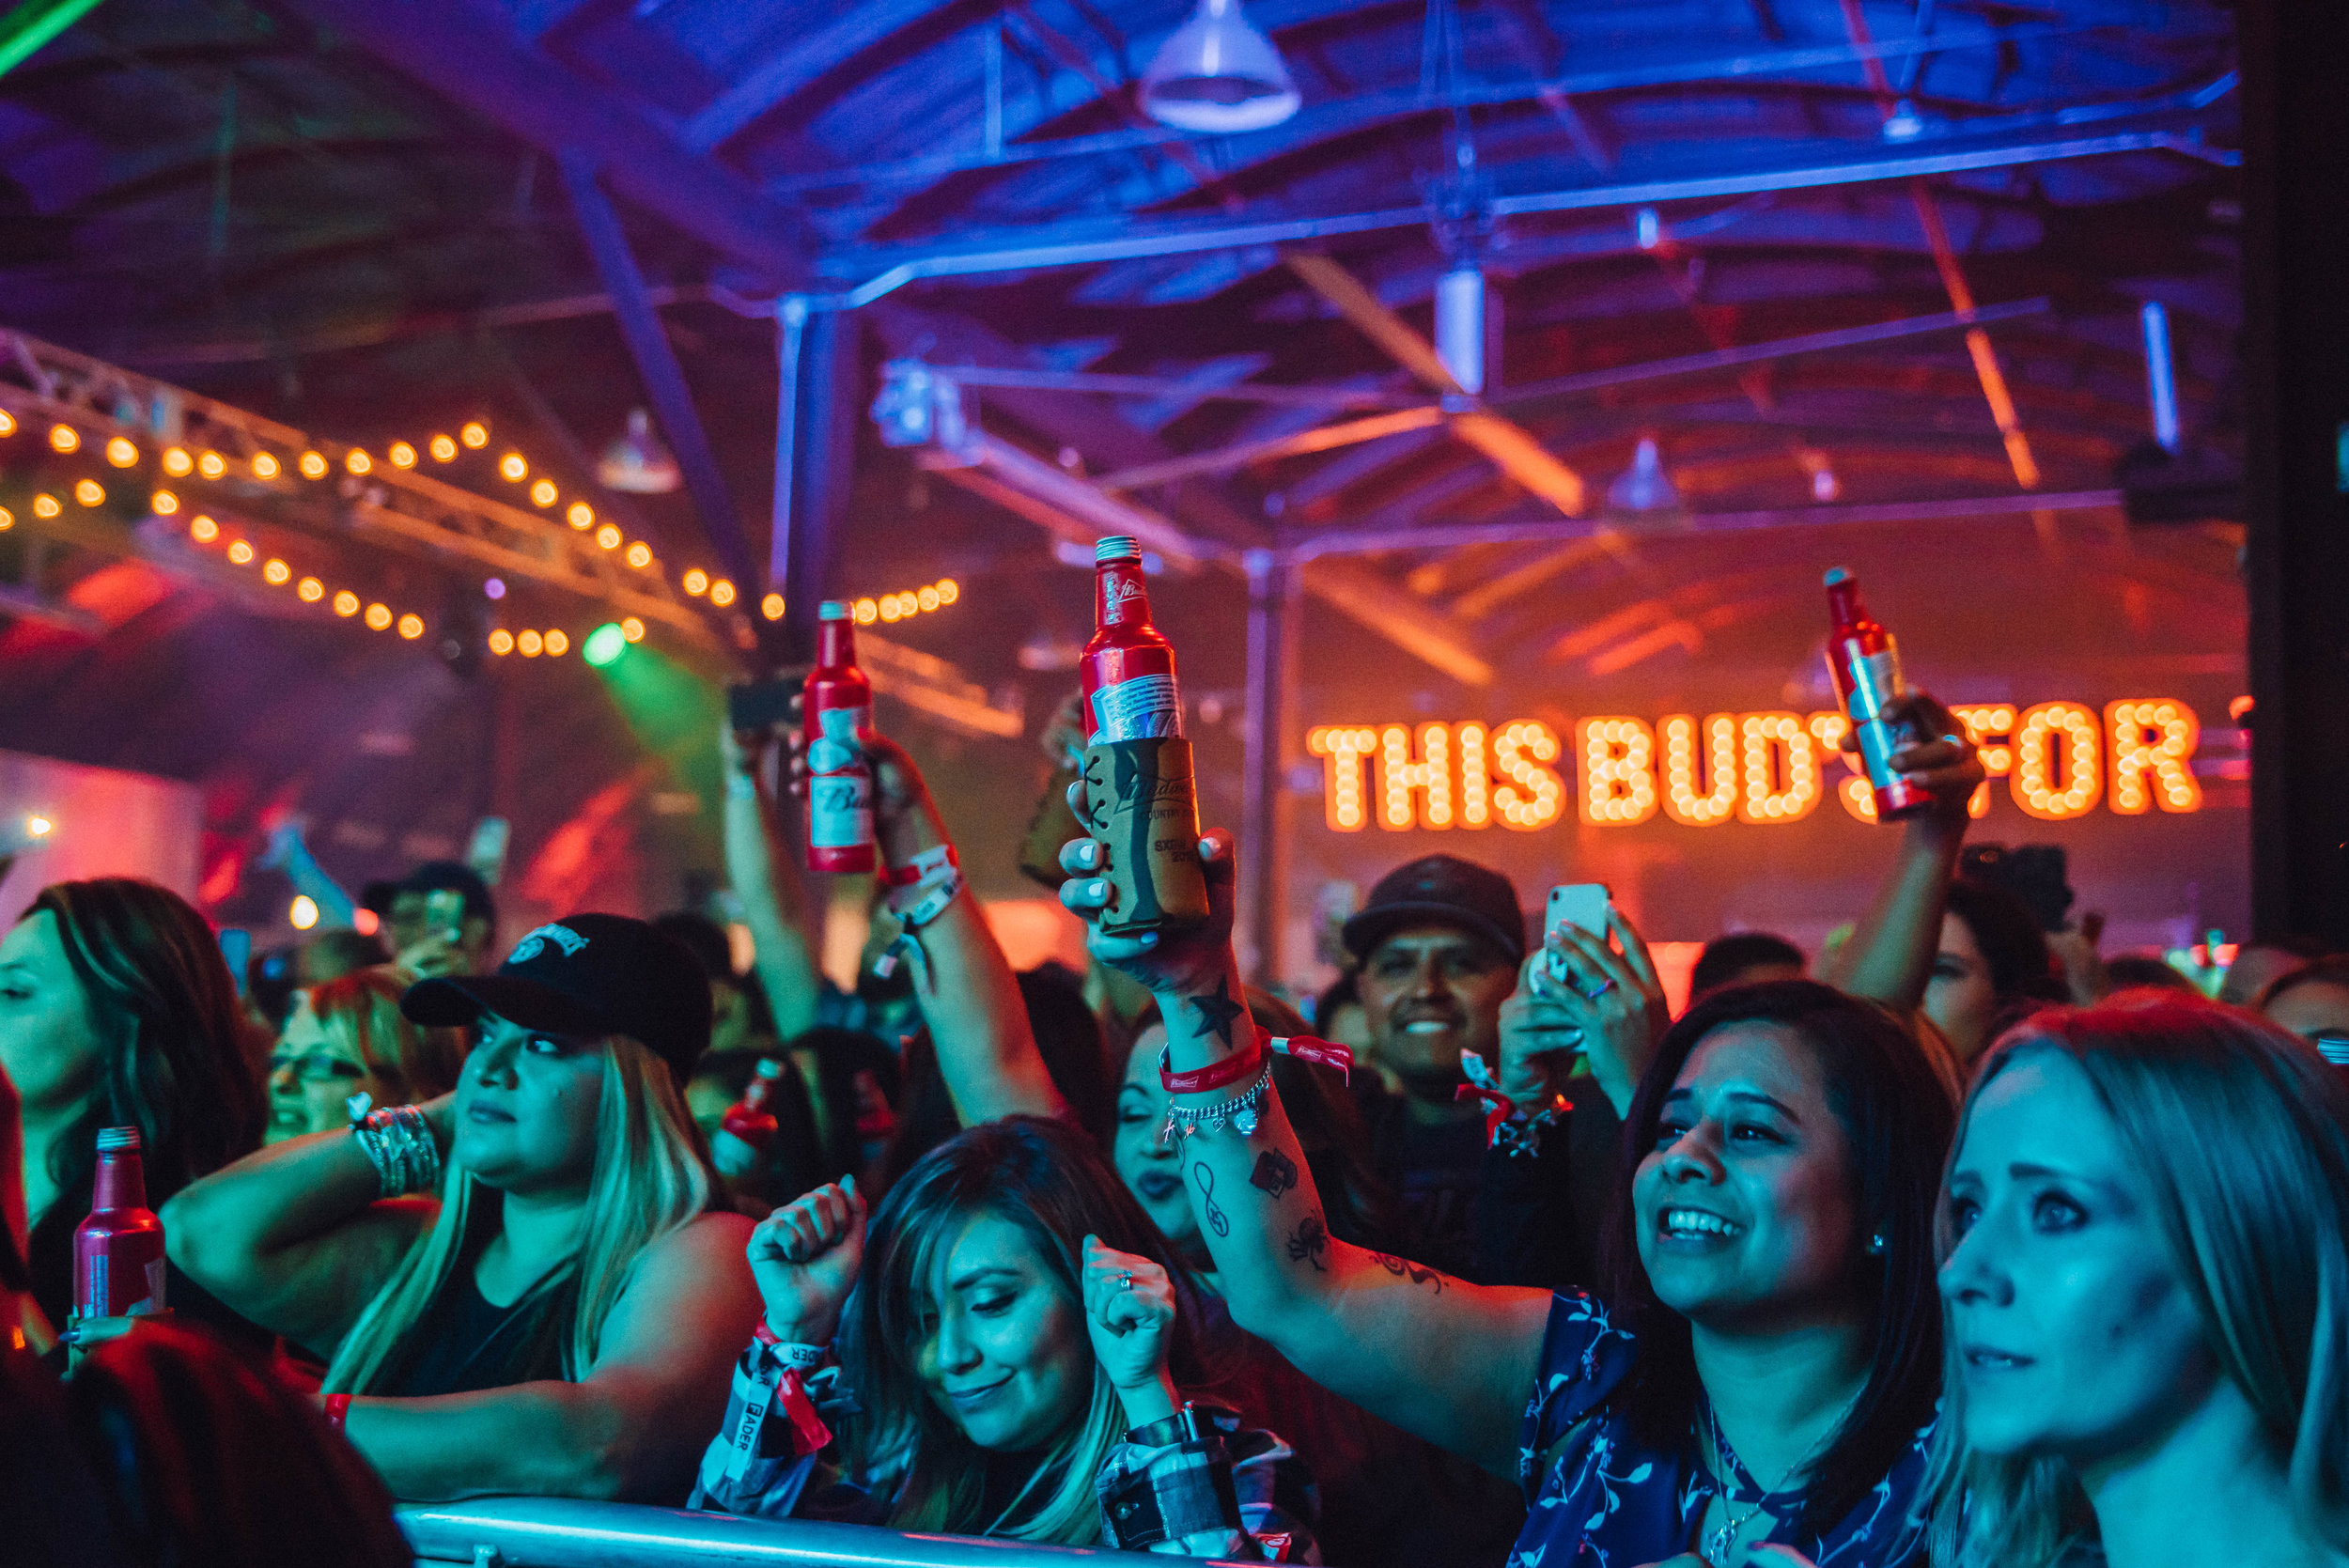 Budweiser party at SXSW 2018 | Jordan Hefler